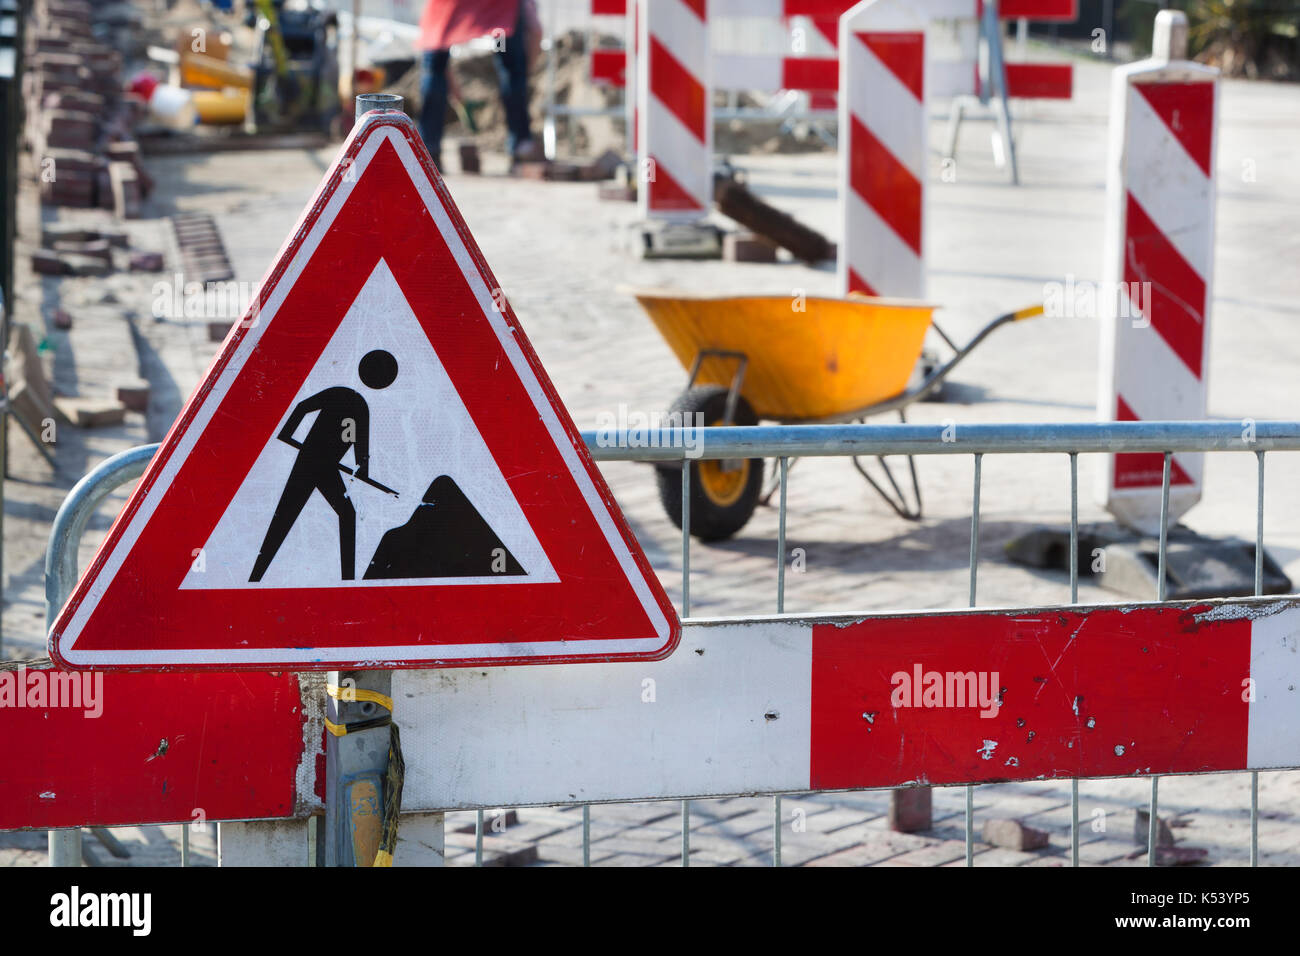 Road work and a work in progress sign - Stock Image